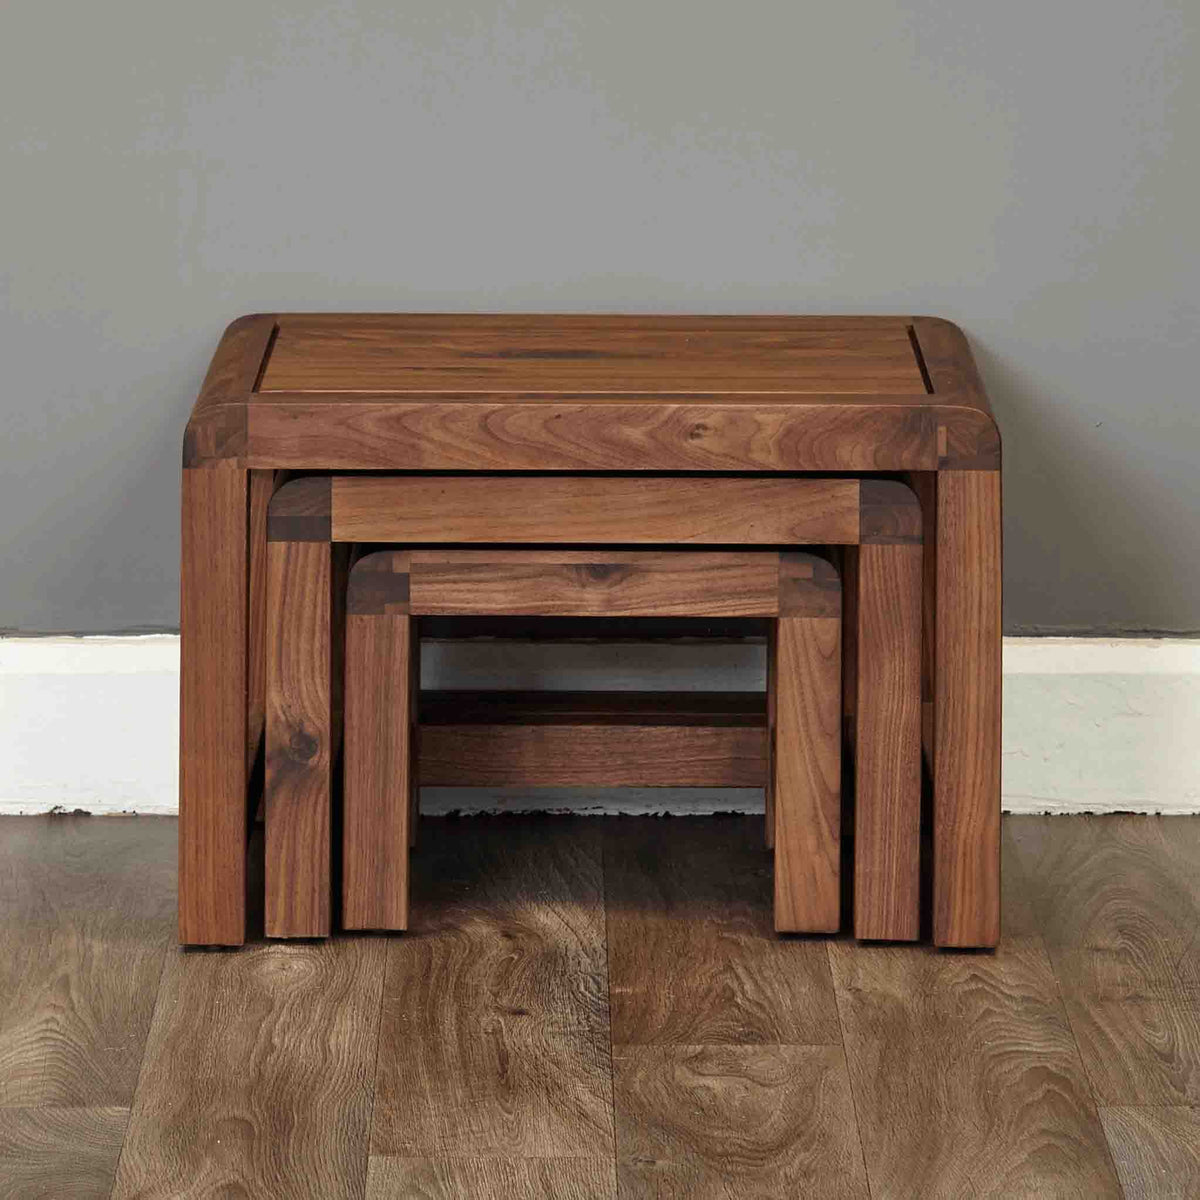 The Salem Walnut Solid Wooden Nesting Tables from Roseland Furniture